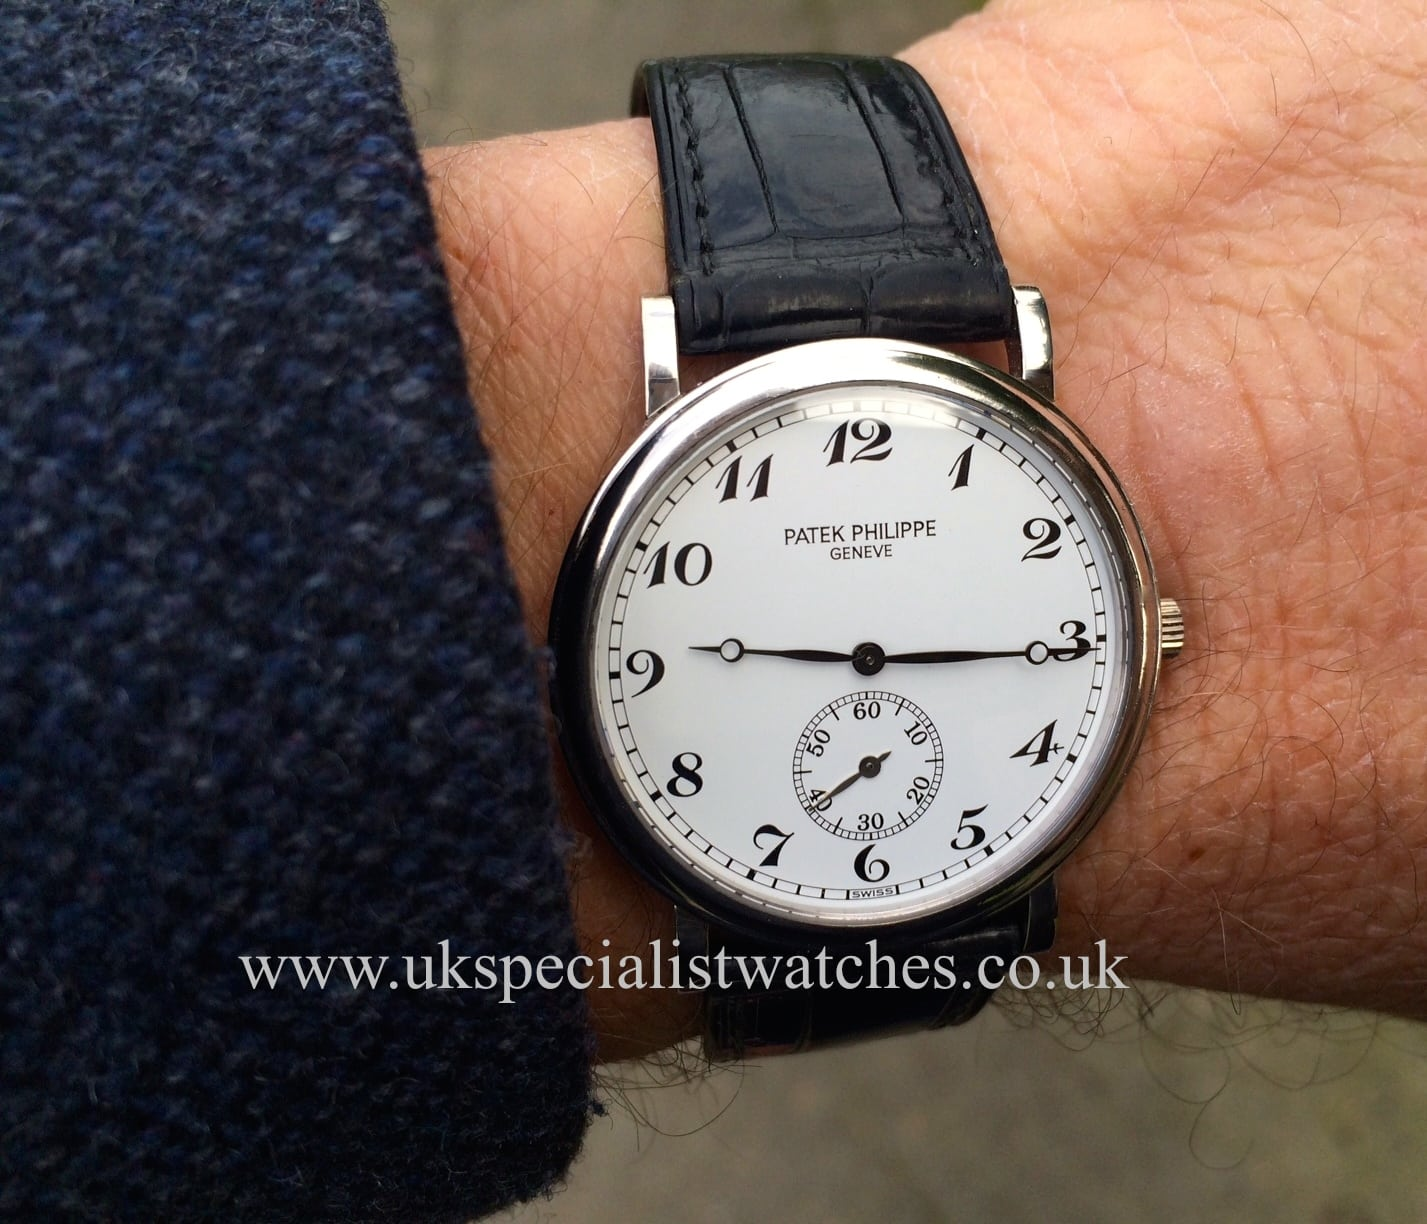 https://www.ukspecialistwatches.co.uk/wp-content/uploads/2018/02/IMG_2393.jpg